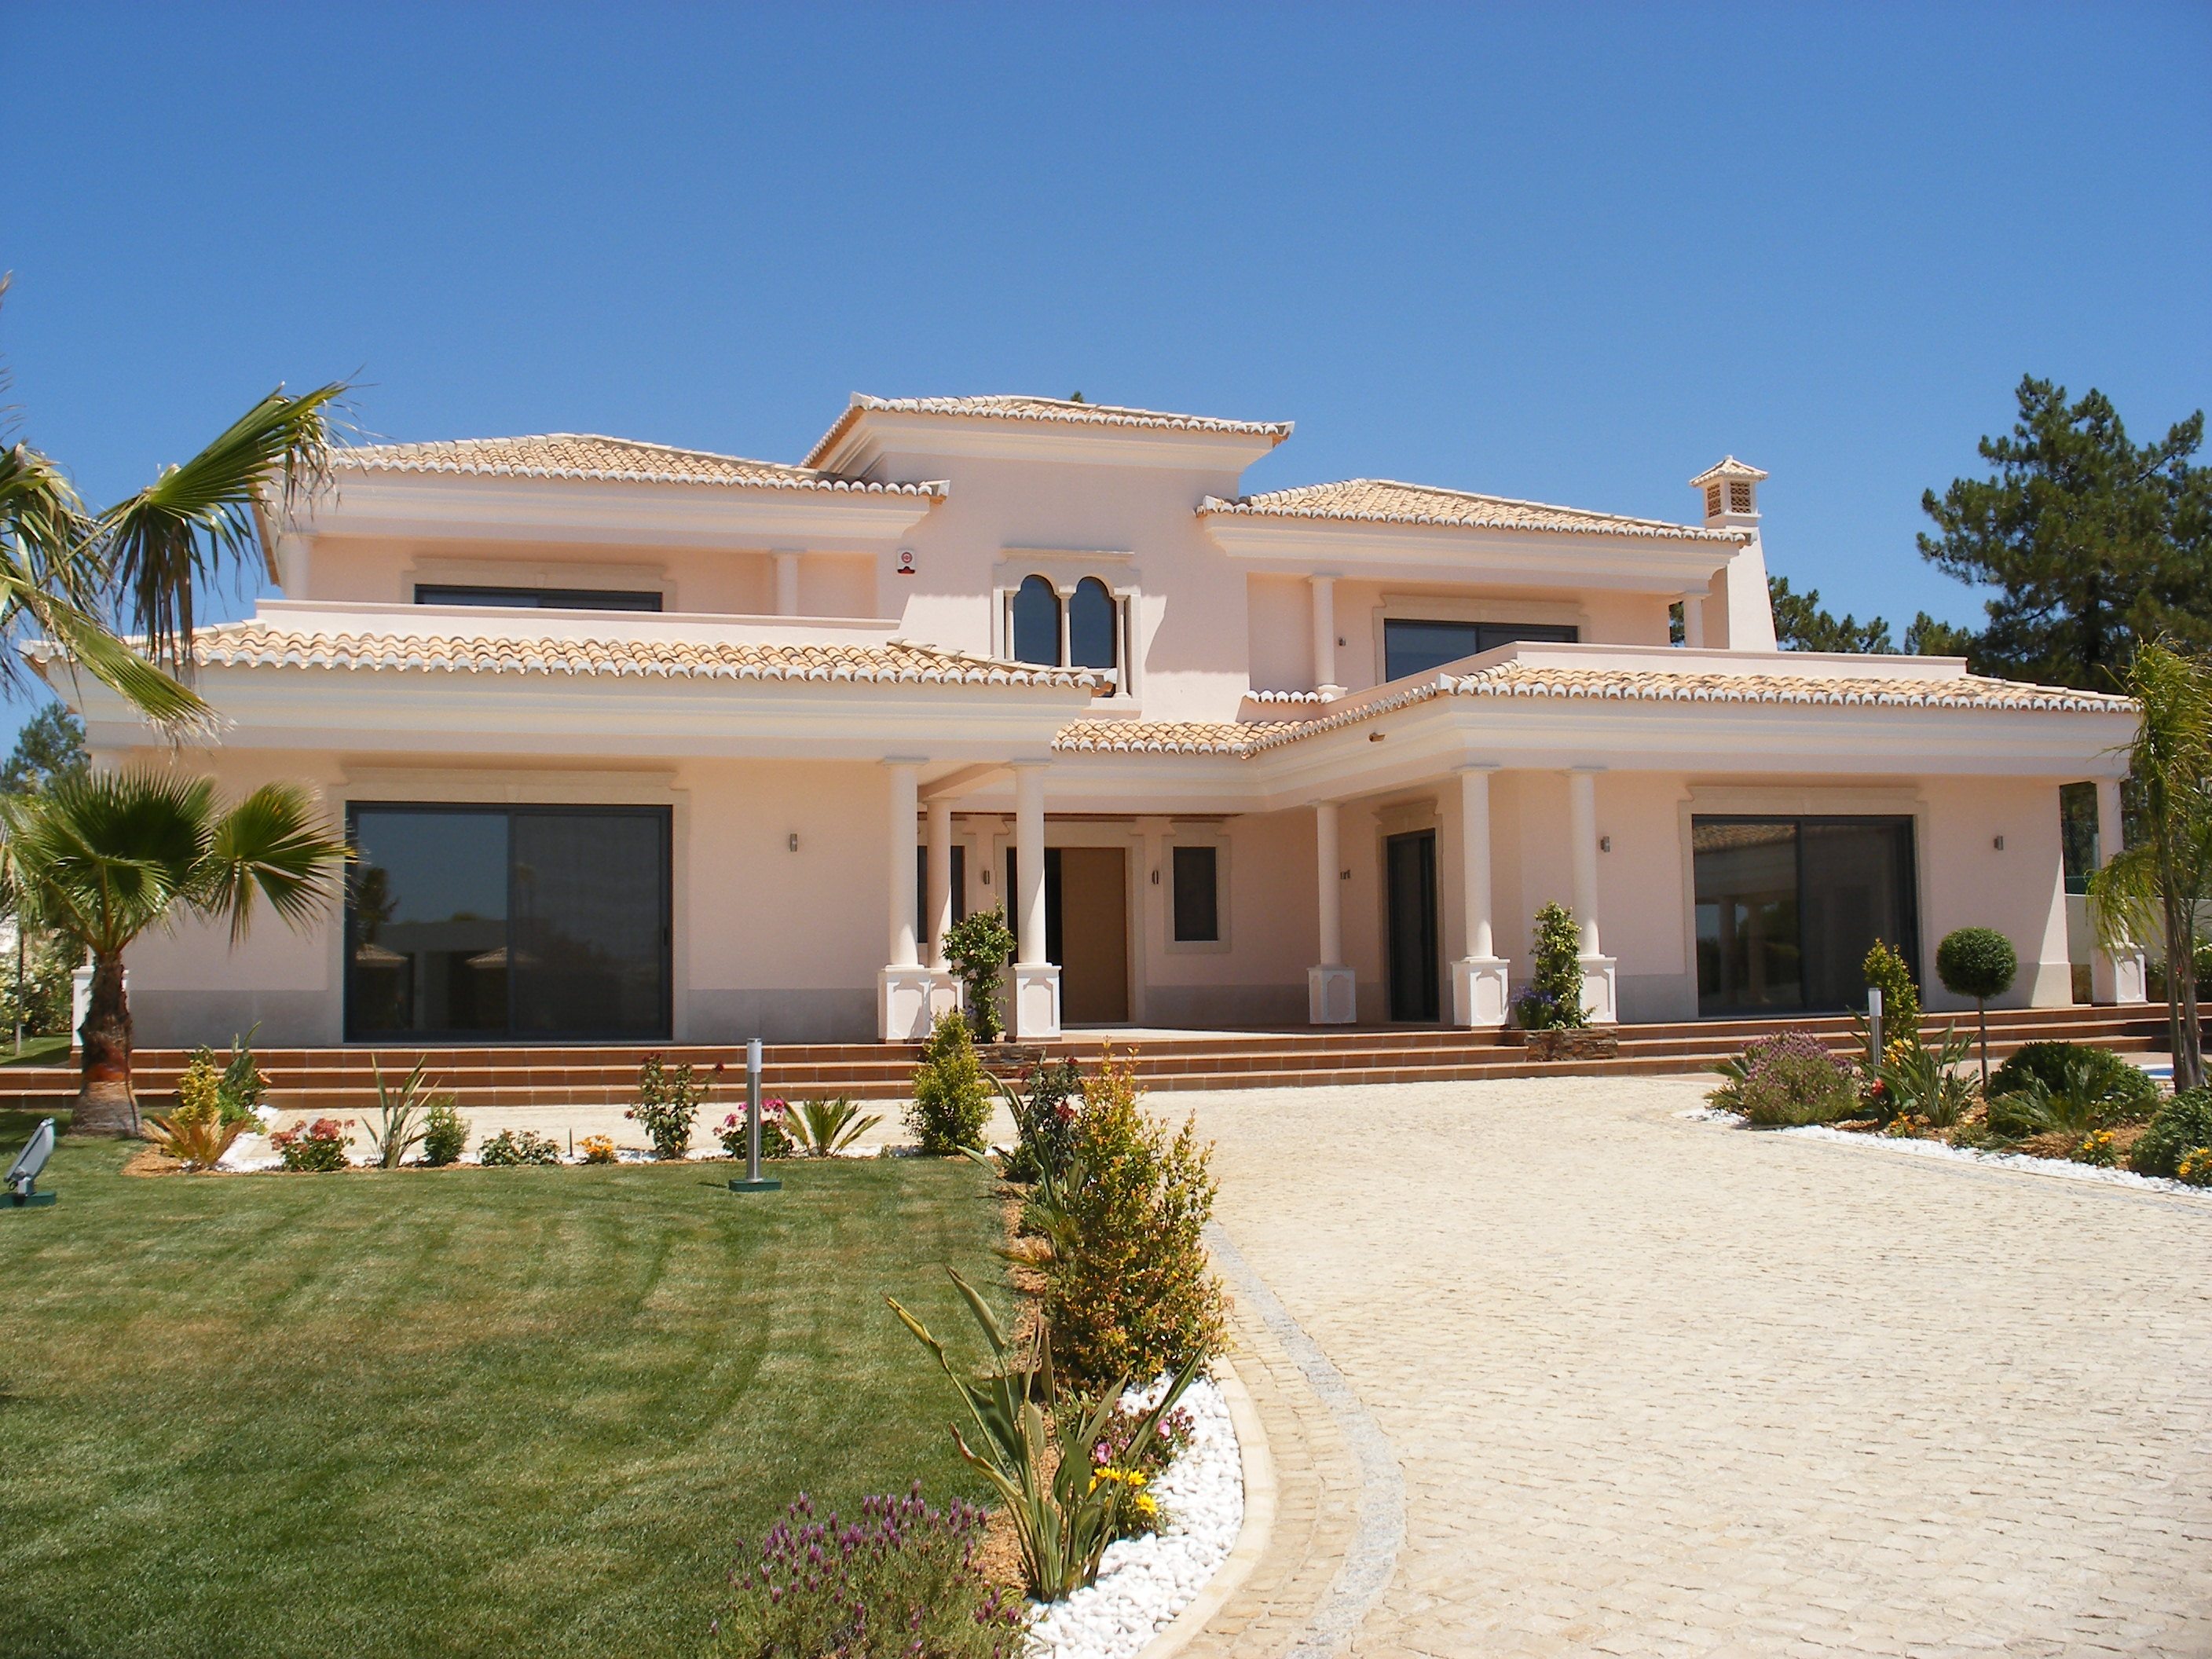 Vale do lobo luxury villas and houses for sale over 1 for New big homes for sale